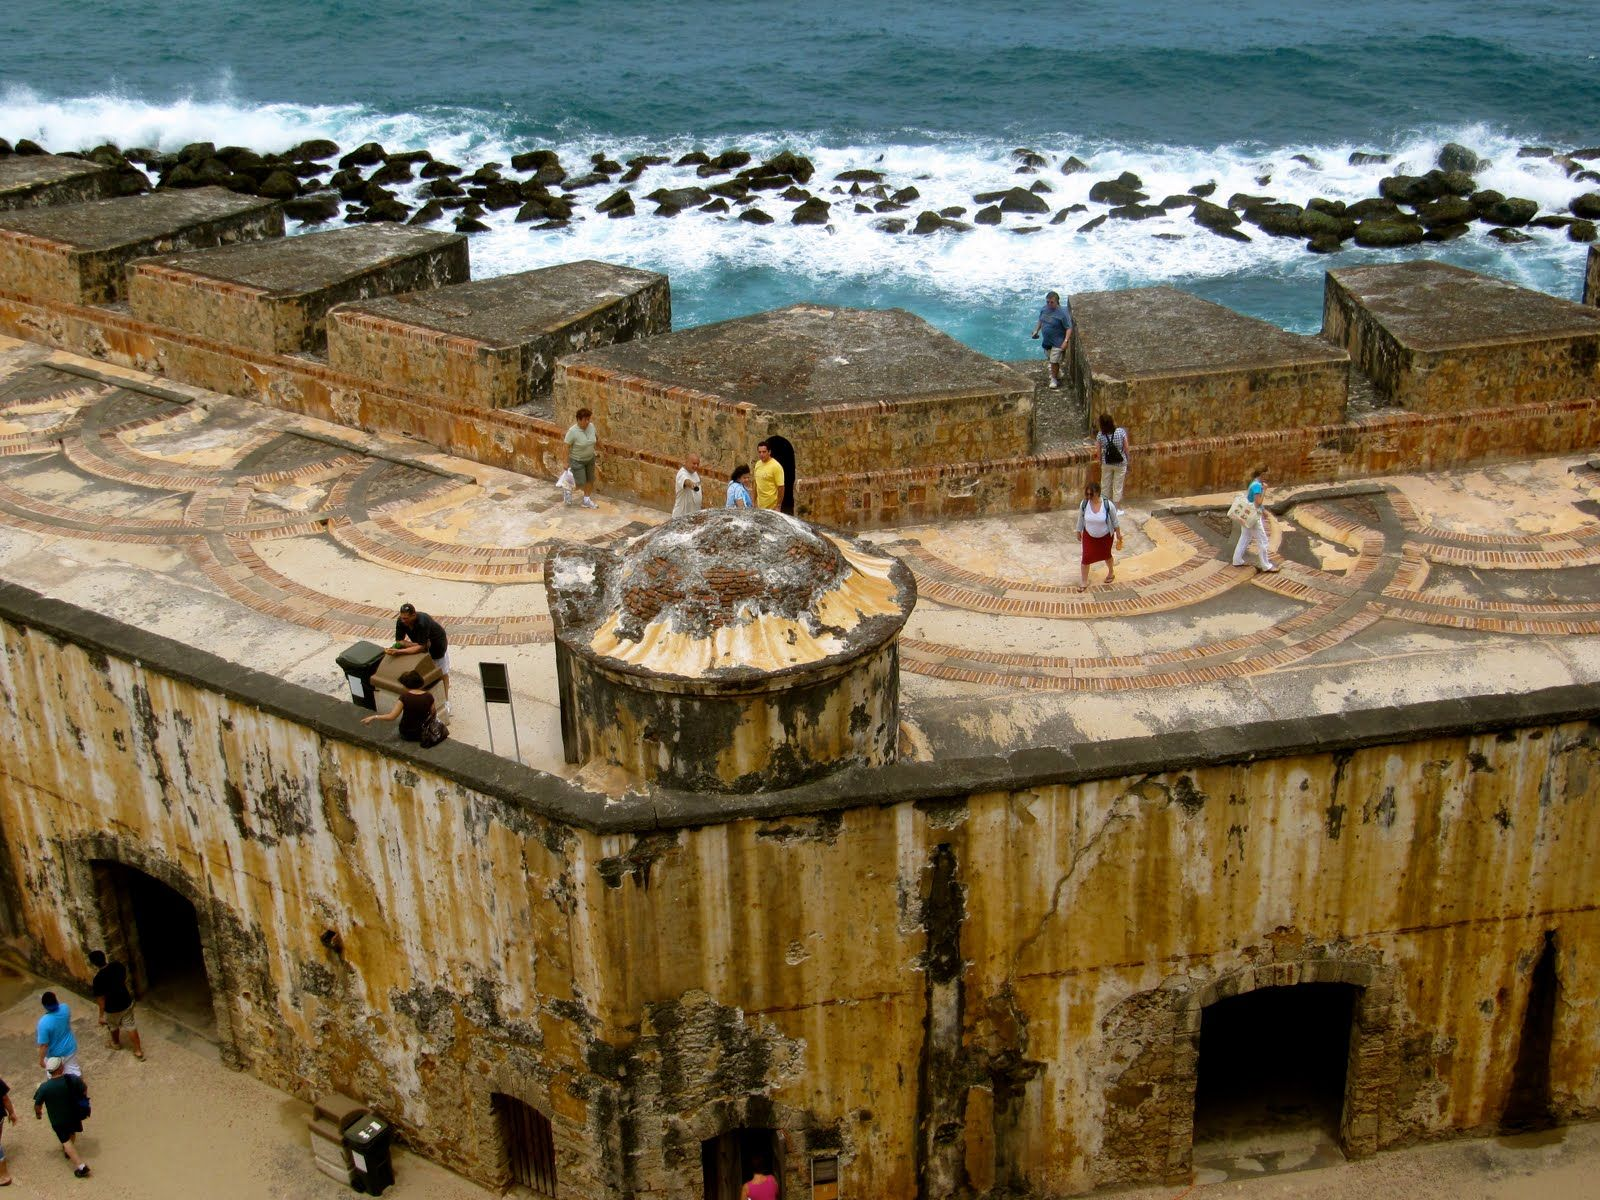 El Morro Fort ~ Historical Spanish Citadel In Old San